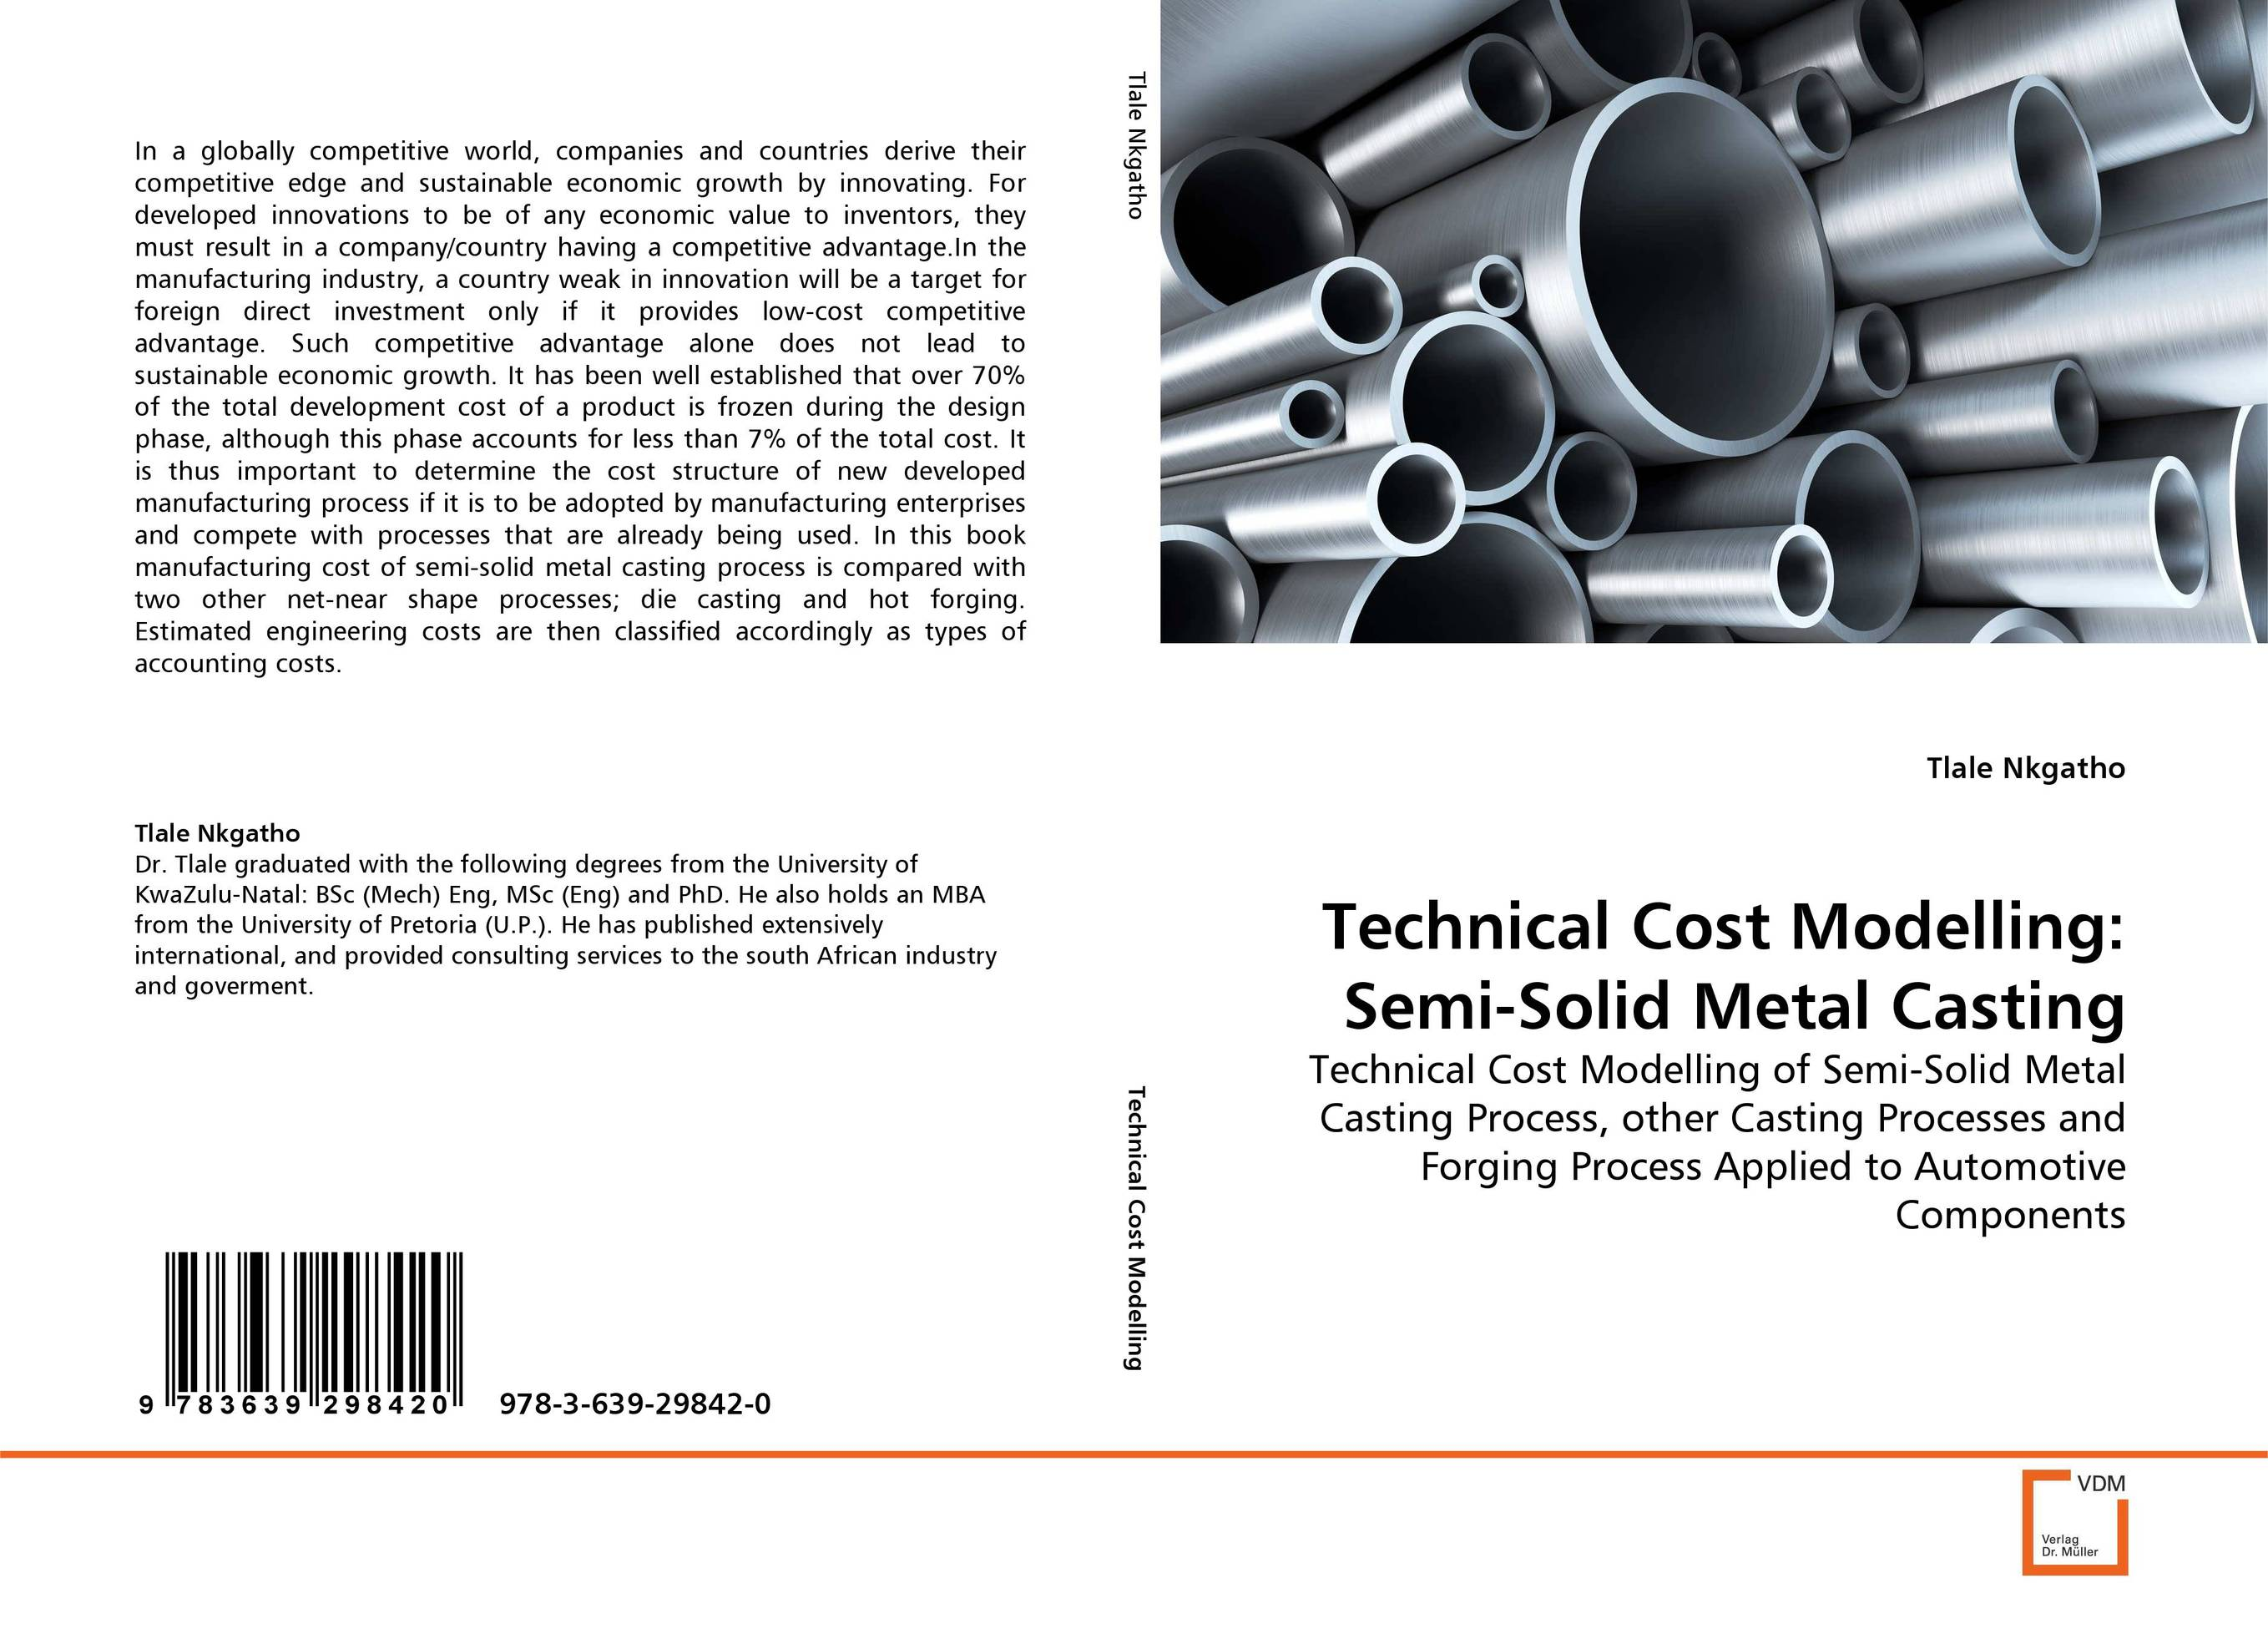 Technical Cost Modelling: Semi-Solid Metal Casting